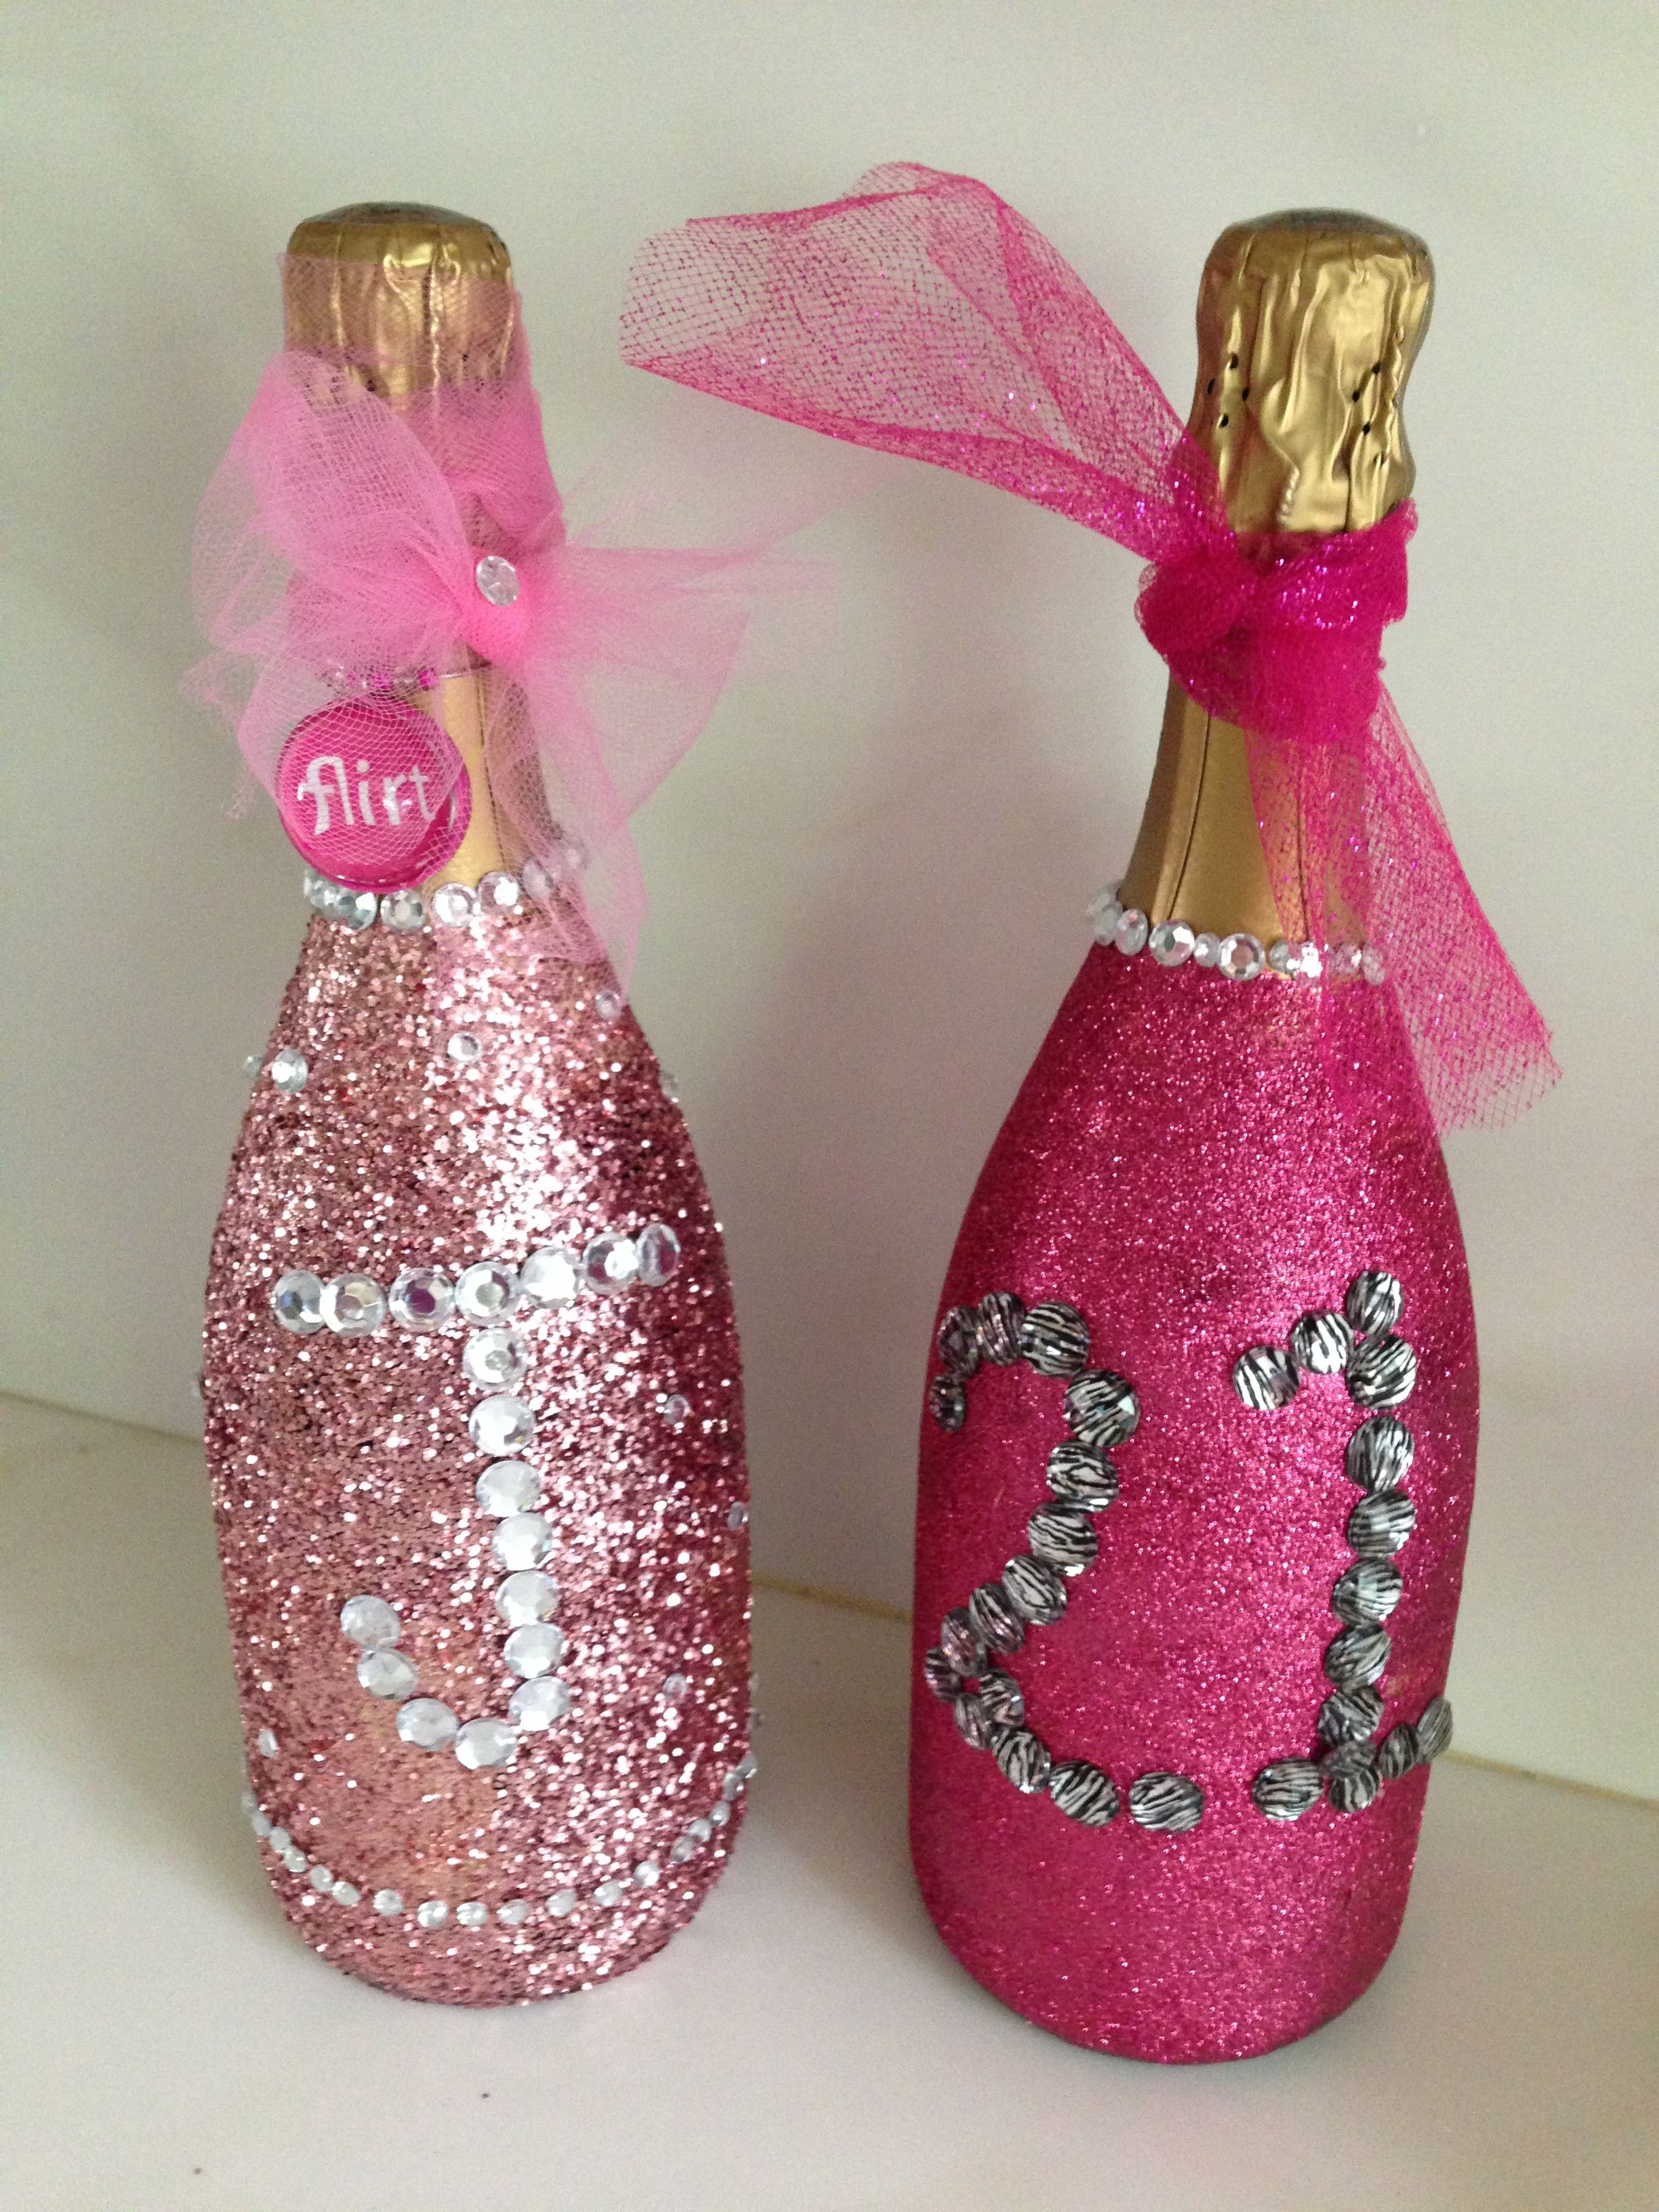 Champagne Bottle Decoration Decorated Champagne Bottles Love The Initial Party Time Ideas